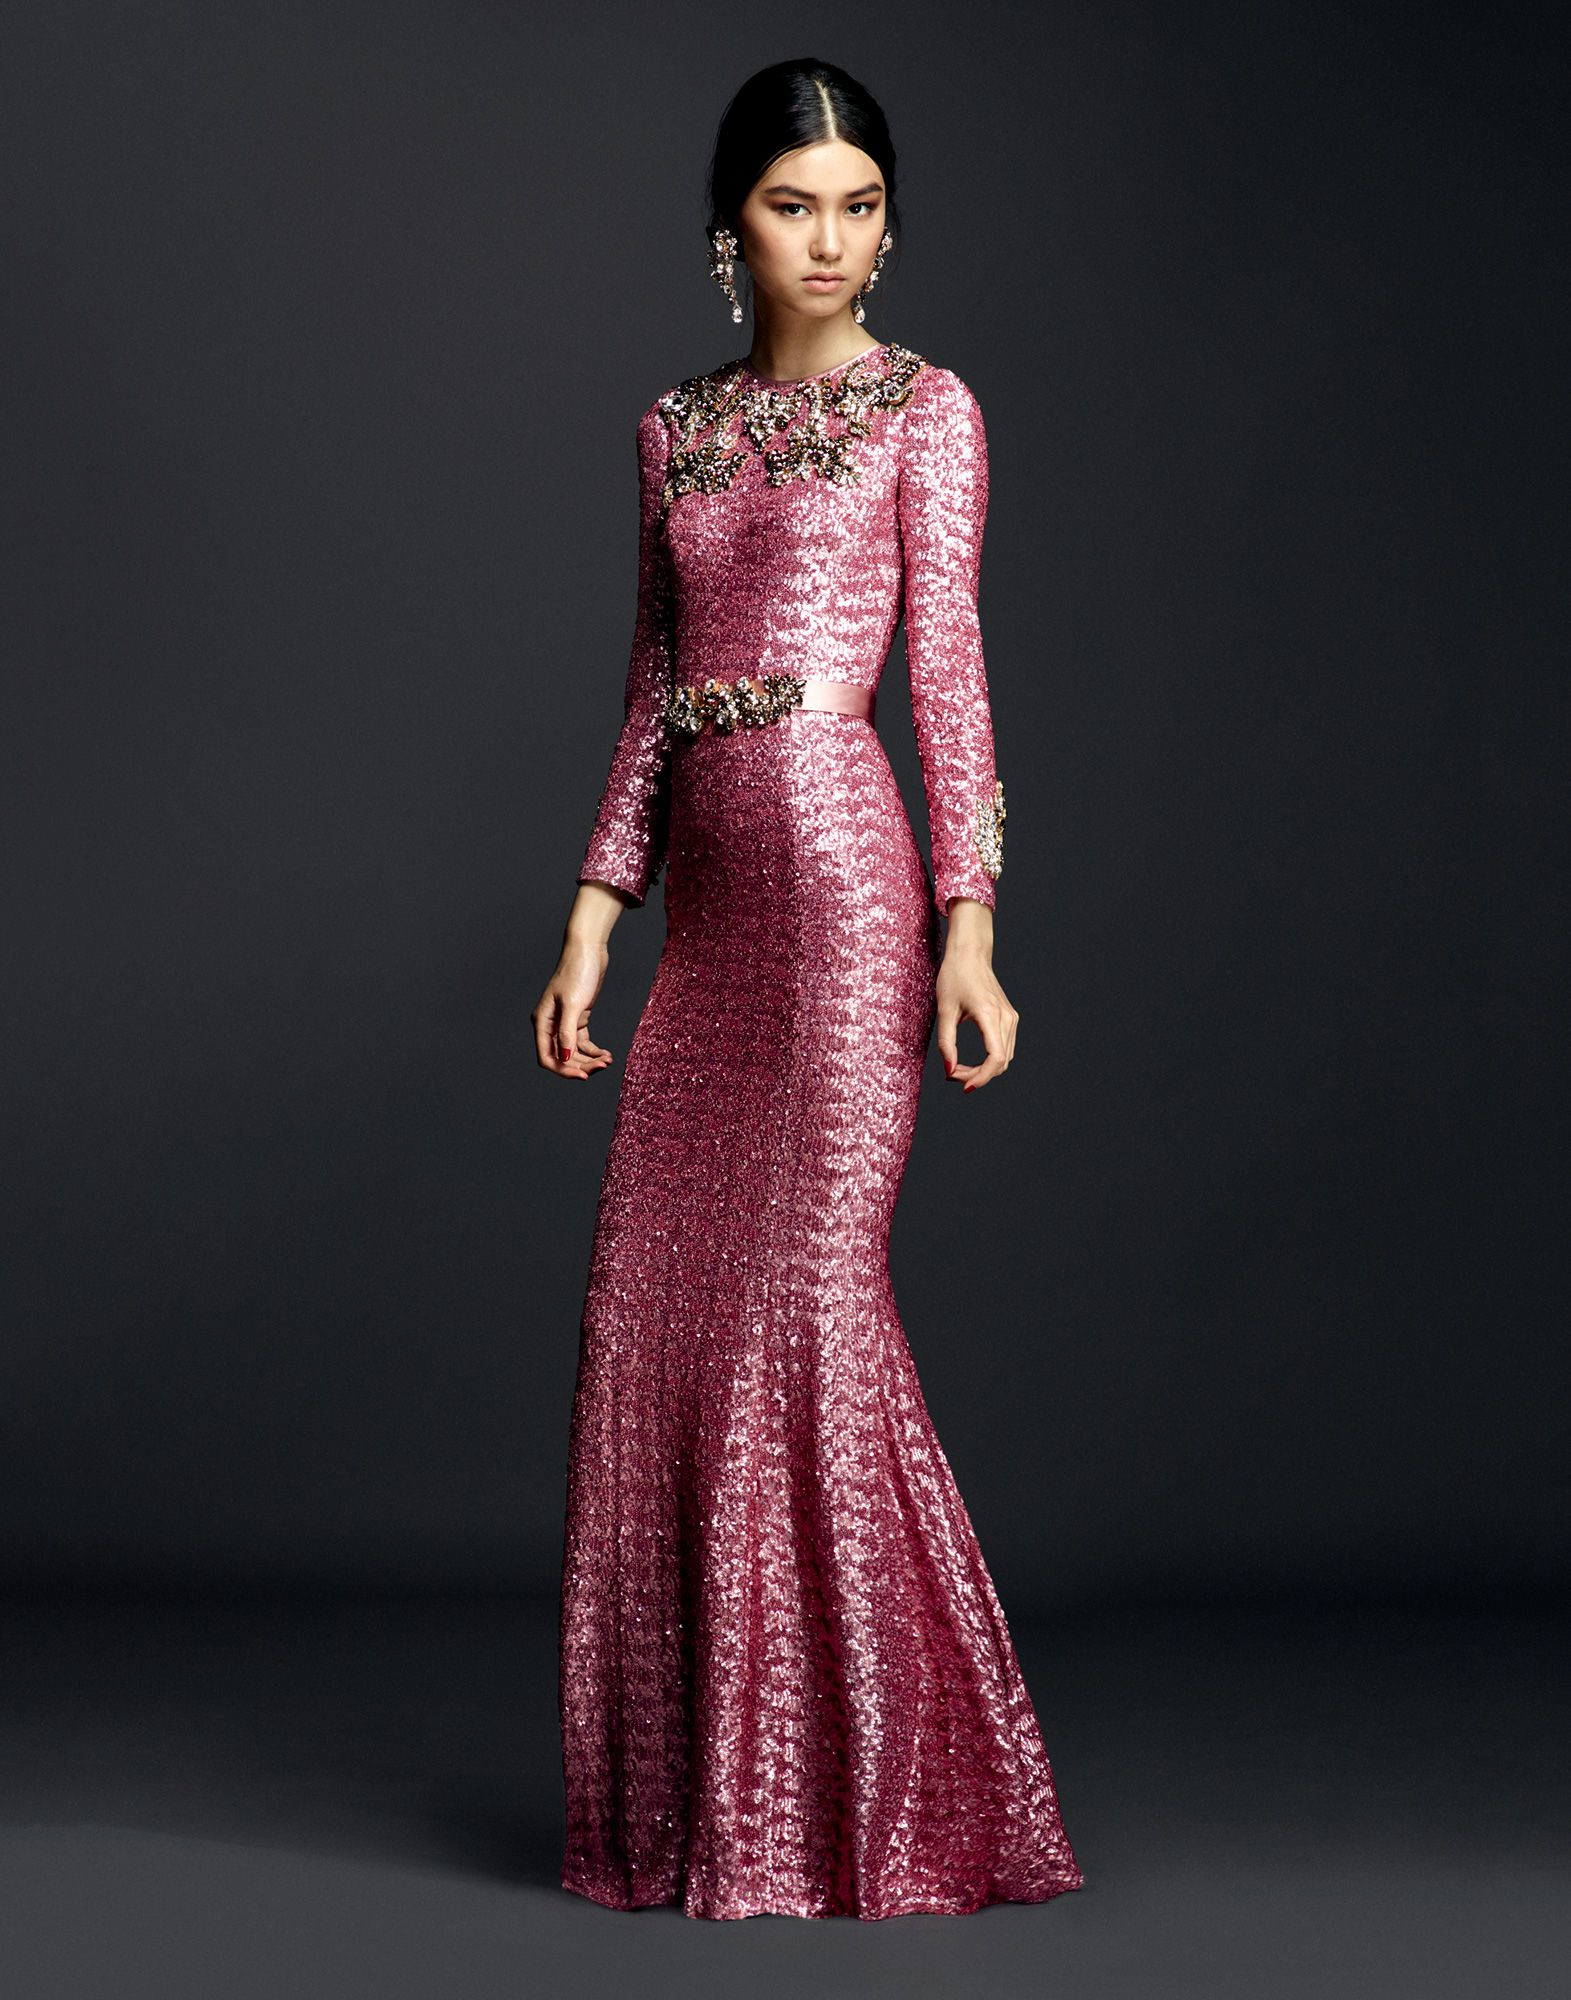 Lyst Dolce Amp Gabbana Sequin Dress With Crystals And Jewelled Belt In Pink